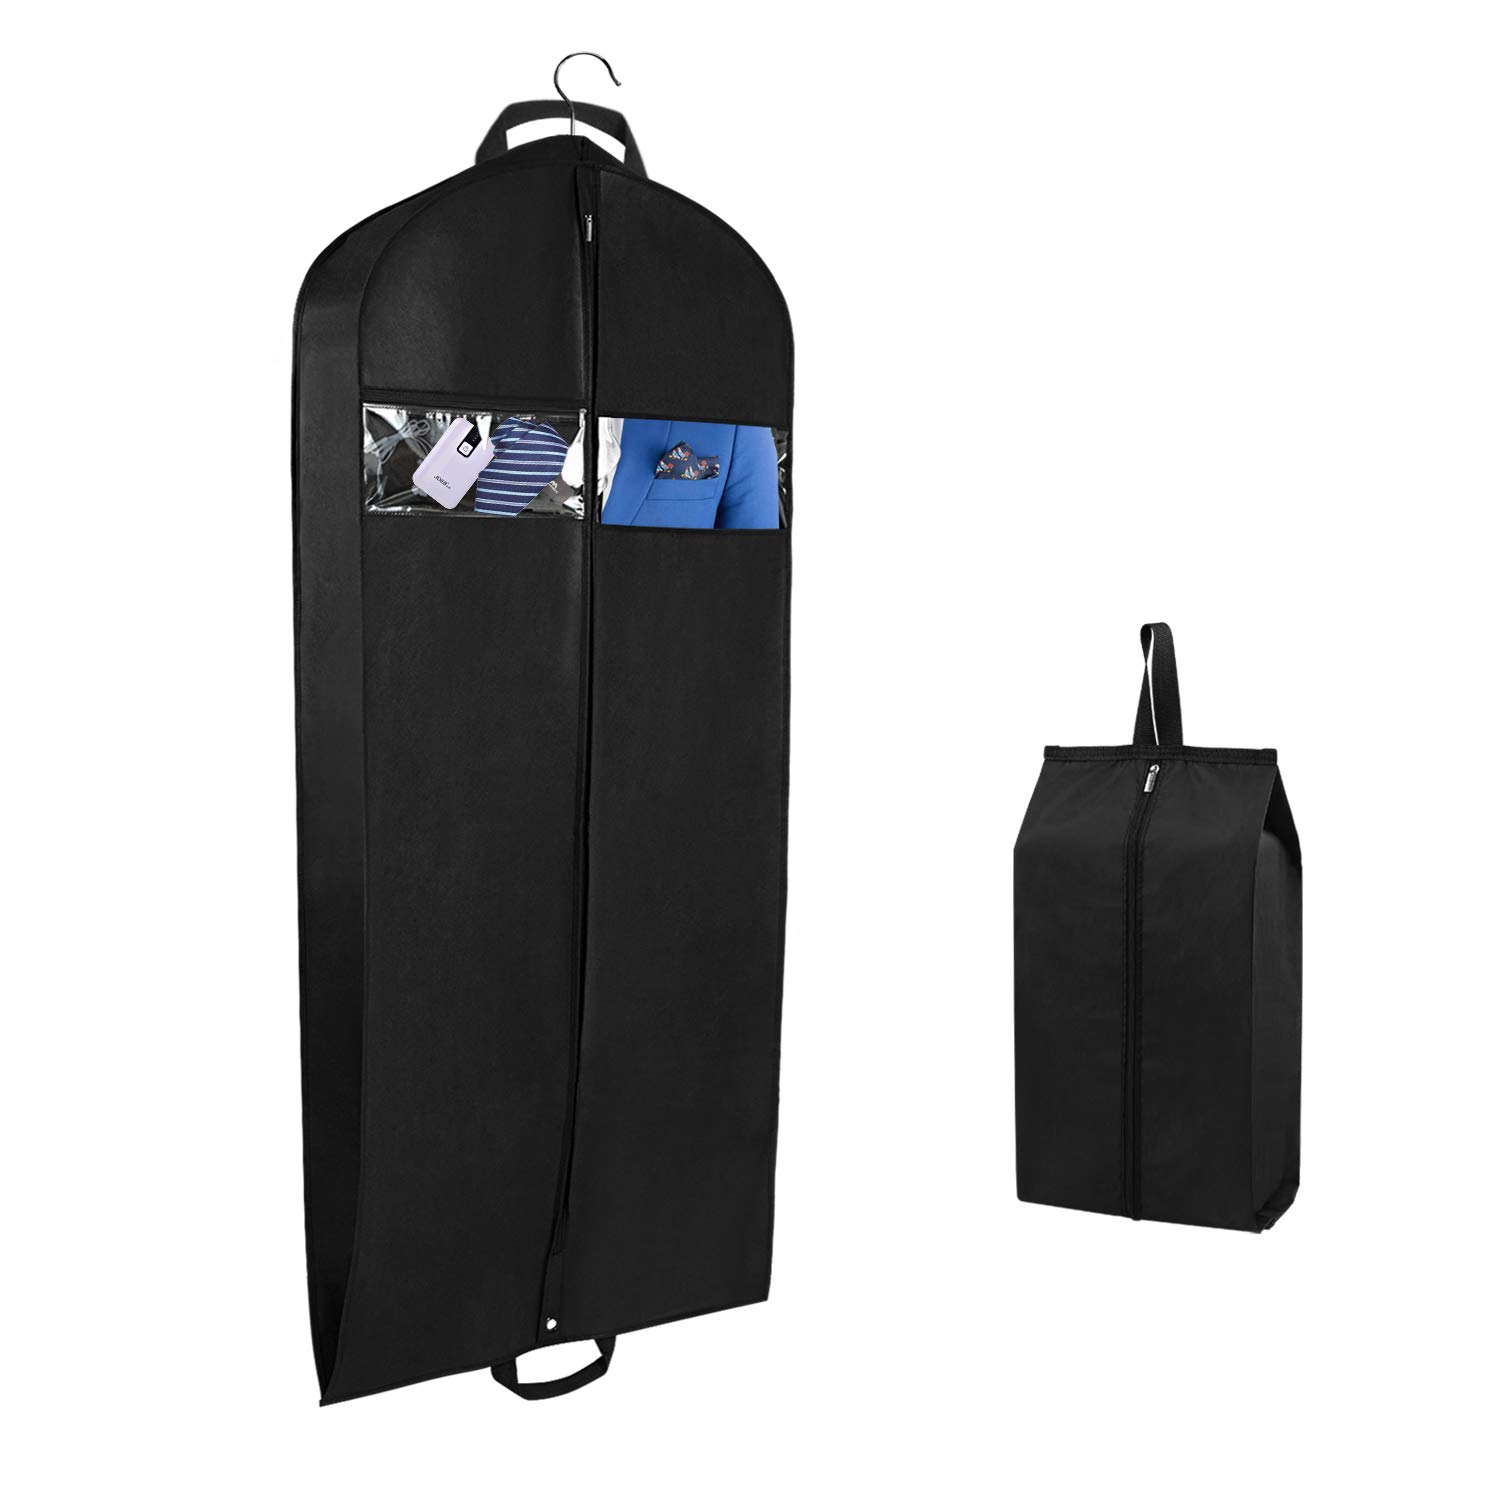 Univivi Garment Bag for Travel and Storage 43'' Breathable Suit Bags with Two Zipped Pockets and One Zipped Shoe Bag by Univivi